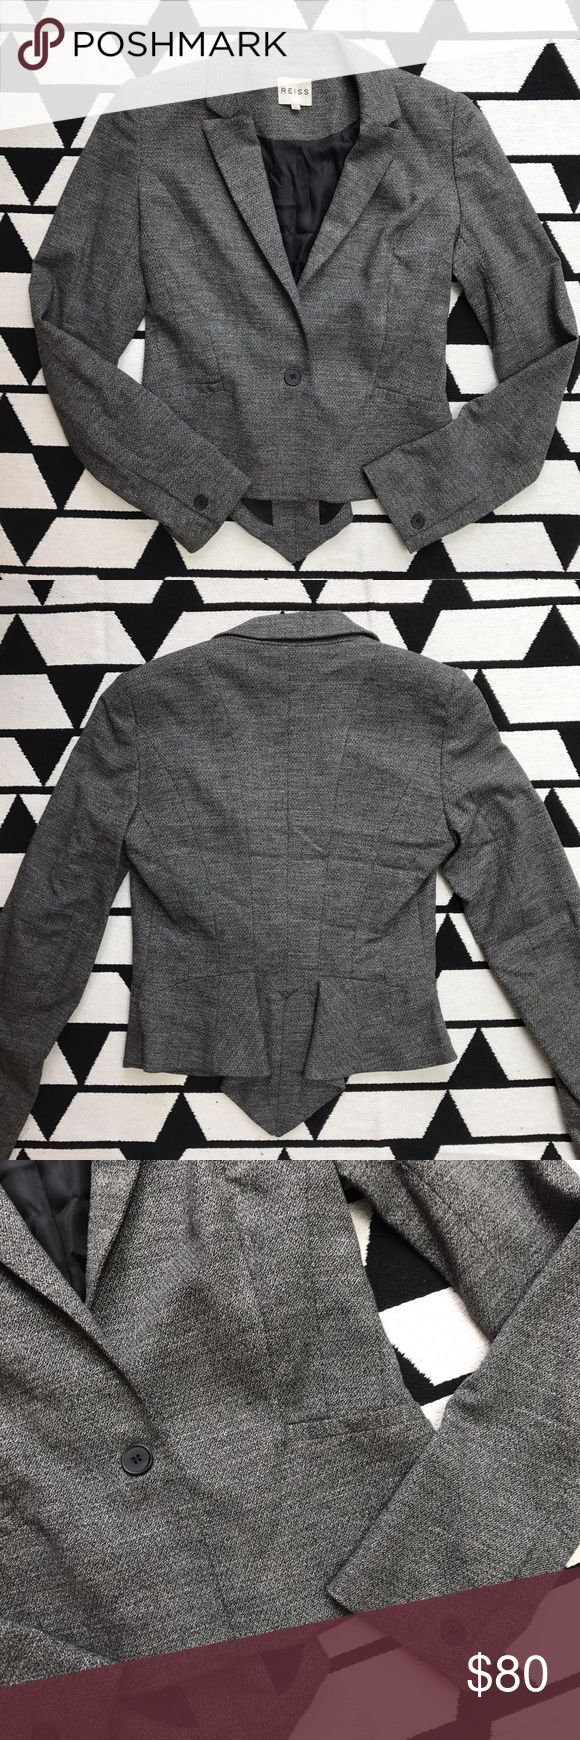 """Reiss Gray Coattail Blazer Excellent gently worn condition with no flaws to note. Bust (armpit to armpit) 17"""". Shoulder to shoulder 15"""". Body Length 21.5"""". Sleeve length 24"""". Slim Fit. Measurements are taken laid flat and approximate. Material is polyester/viscose/cotton/elastane. Fully lined. Faux front pockets. Mini coat tail in the back. Very subtle shoulder pads. NO trades/modeling. Offers welcomed. Reiss Jackets & Coats Blazers"""